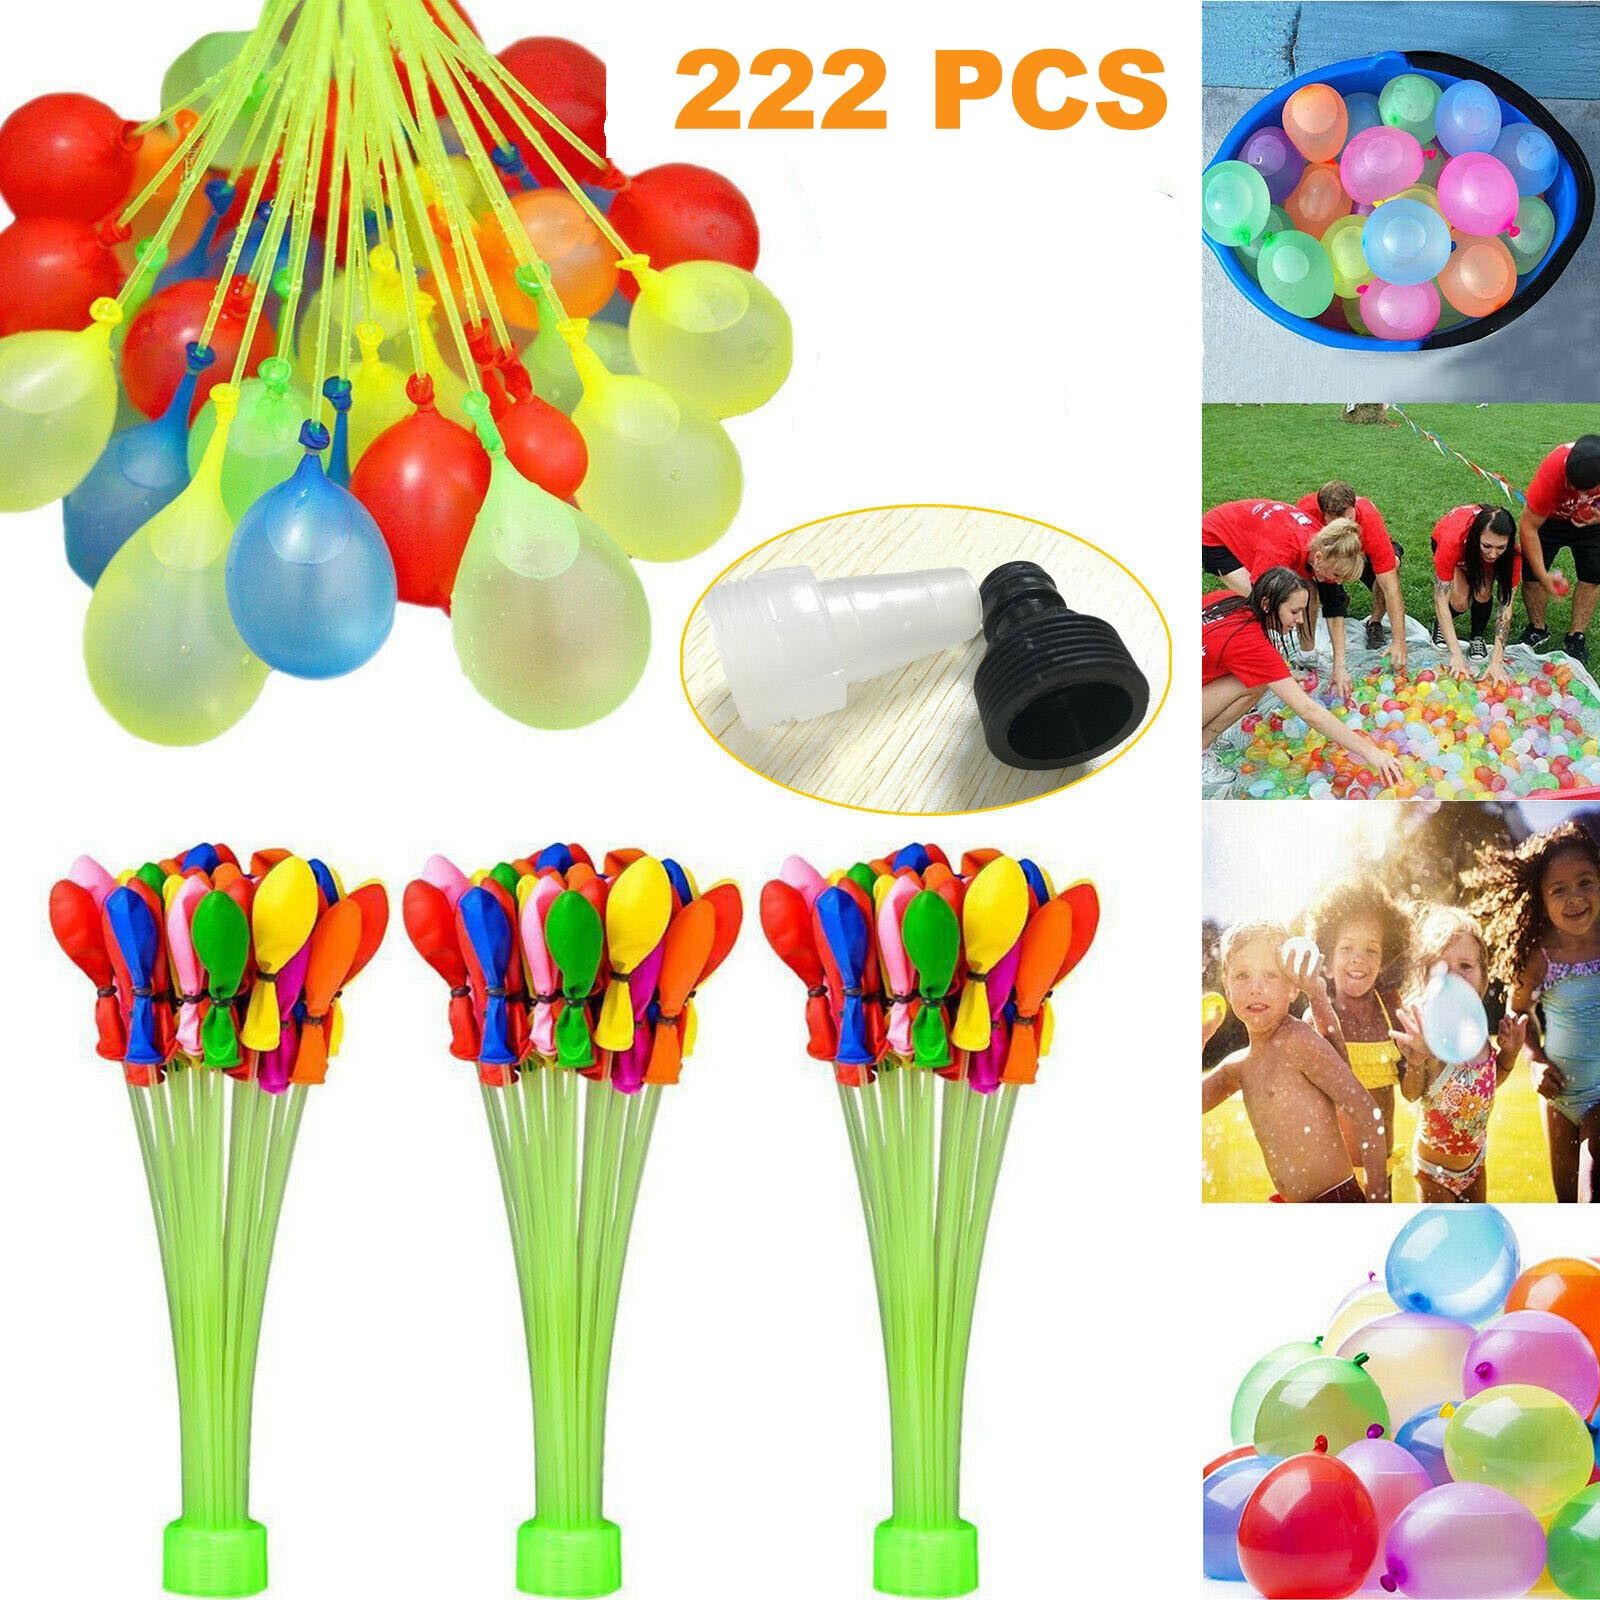 222 pcs Water Balloons Toys Water Injection Rapid Filled Summer Water Bomb for Kids Water-filled Balloons Beach Fun Party Chindren Kids Toys